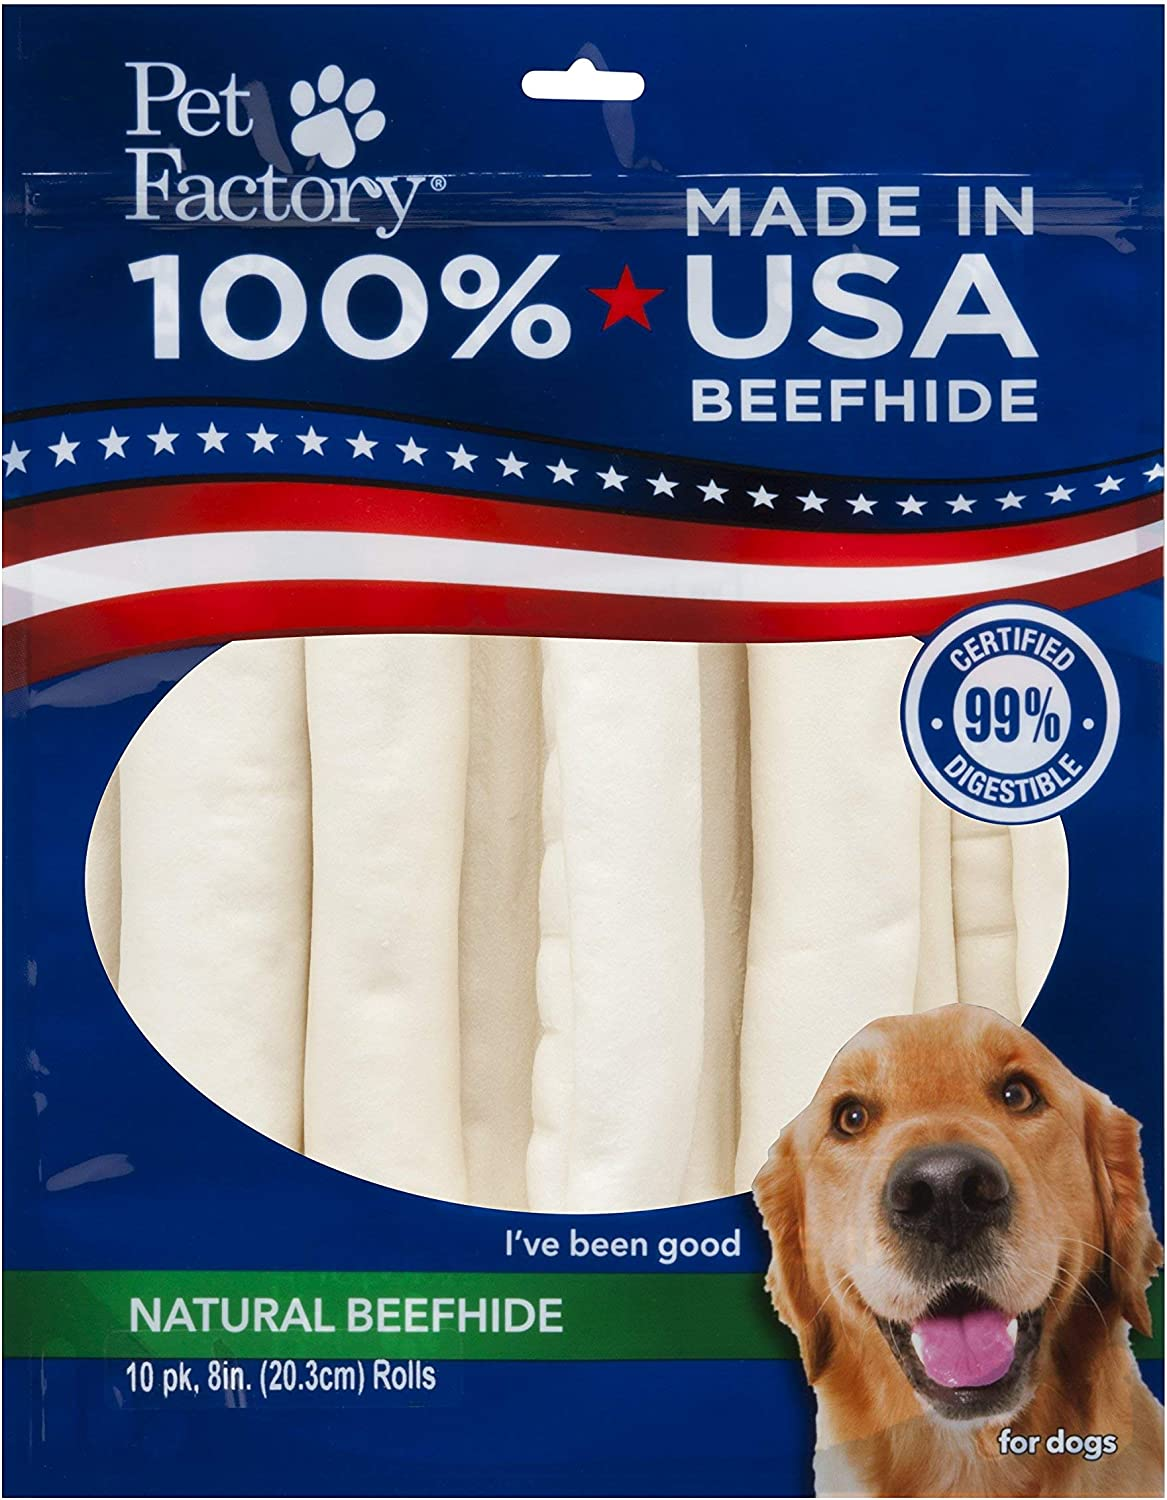 Pet Factory Natural Beefhide Dog Treats 78208, Made in USA, Digestive 8-Inch Retriever Dog Chew Rolls, No Artificial Preservatives or Additives, 10-Pack. Resealable Package